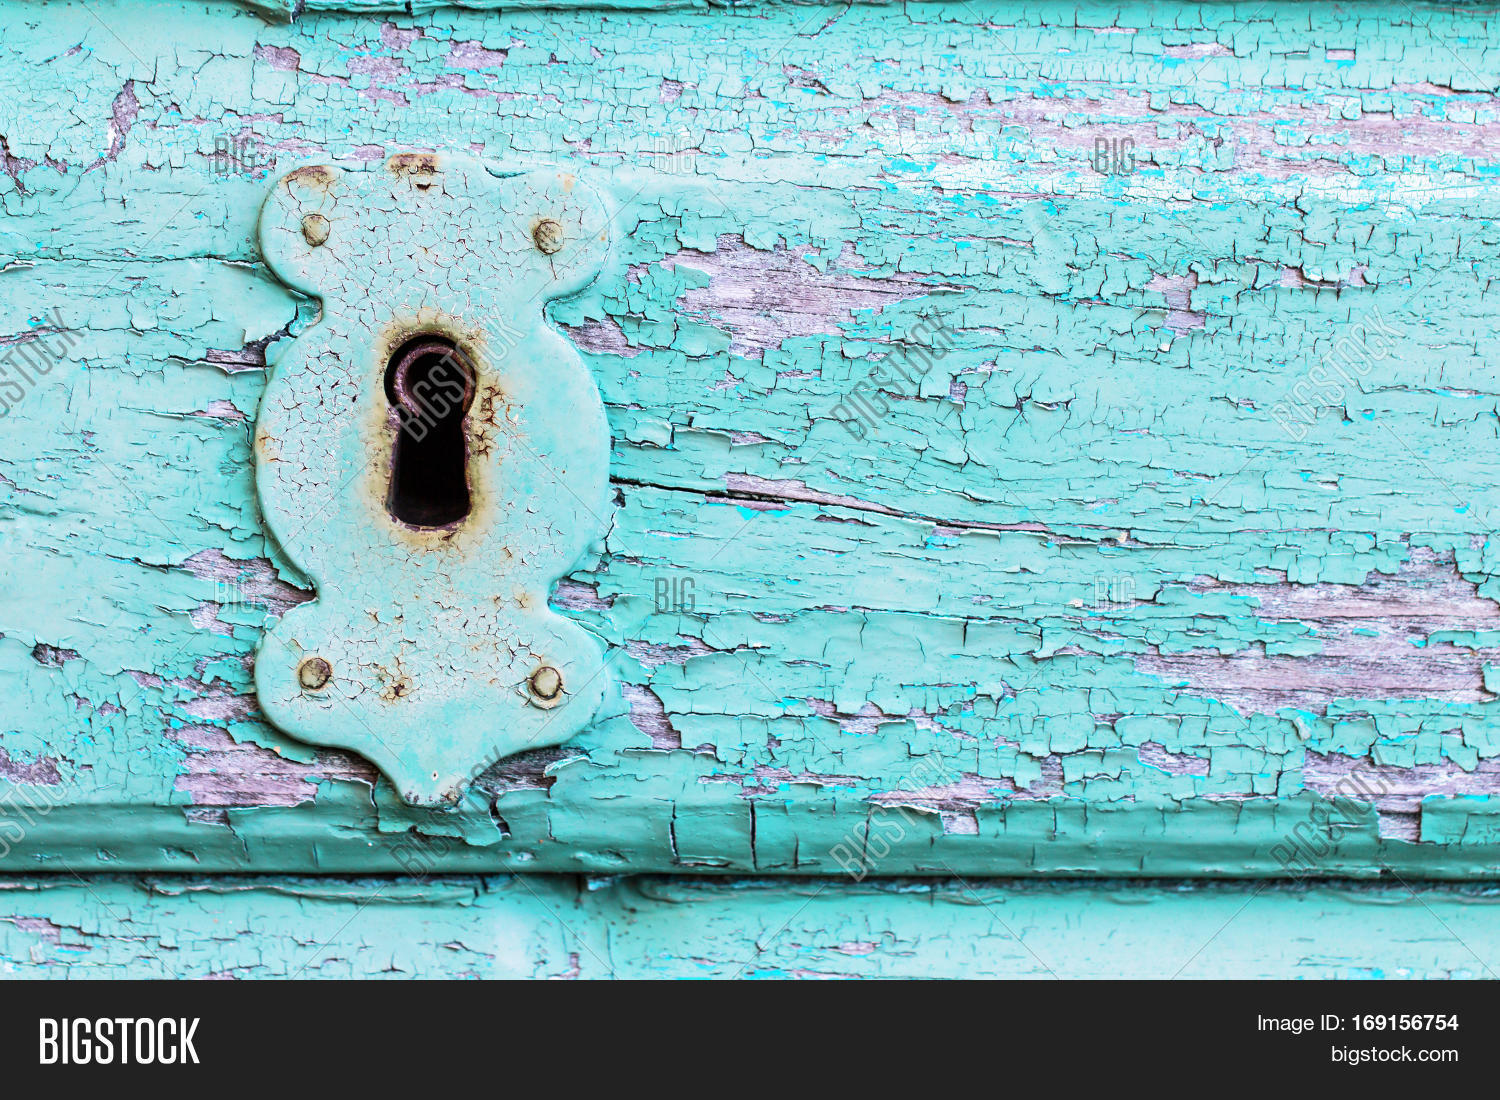 Beautiful Old Vintage Rustic Cracked Turquoise Paint Wooden Door And Rusty Iron Lock Keyhole As